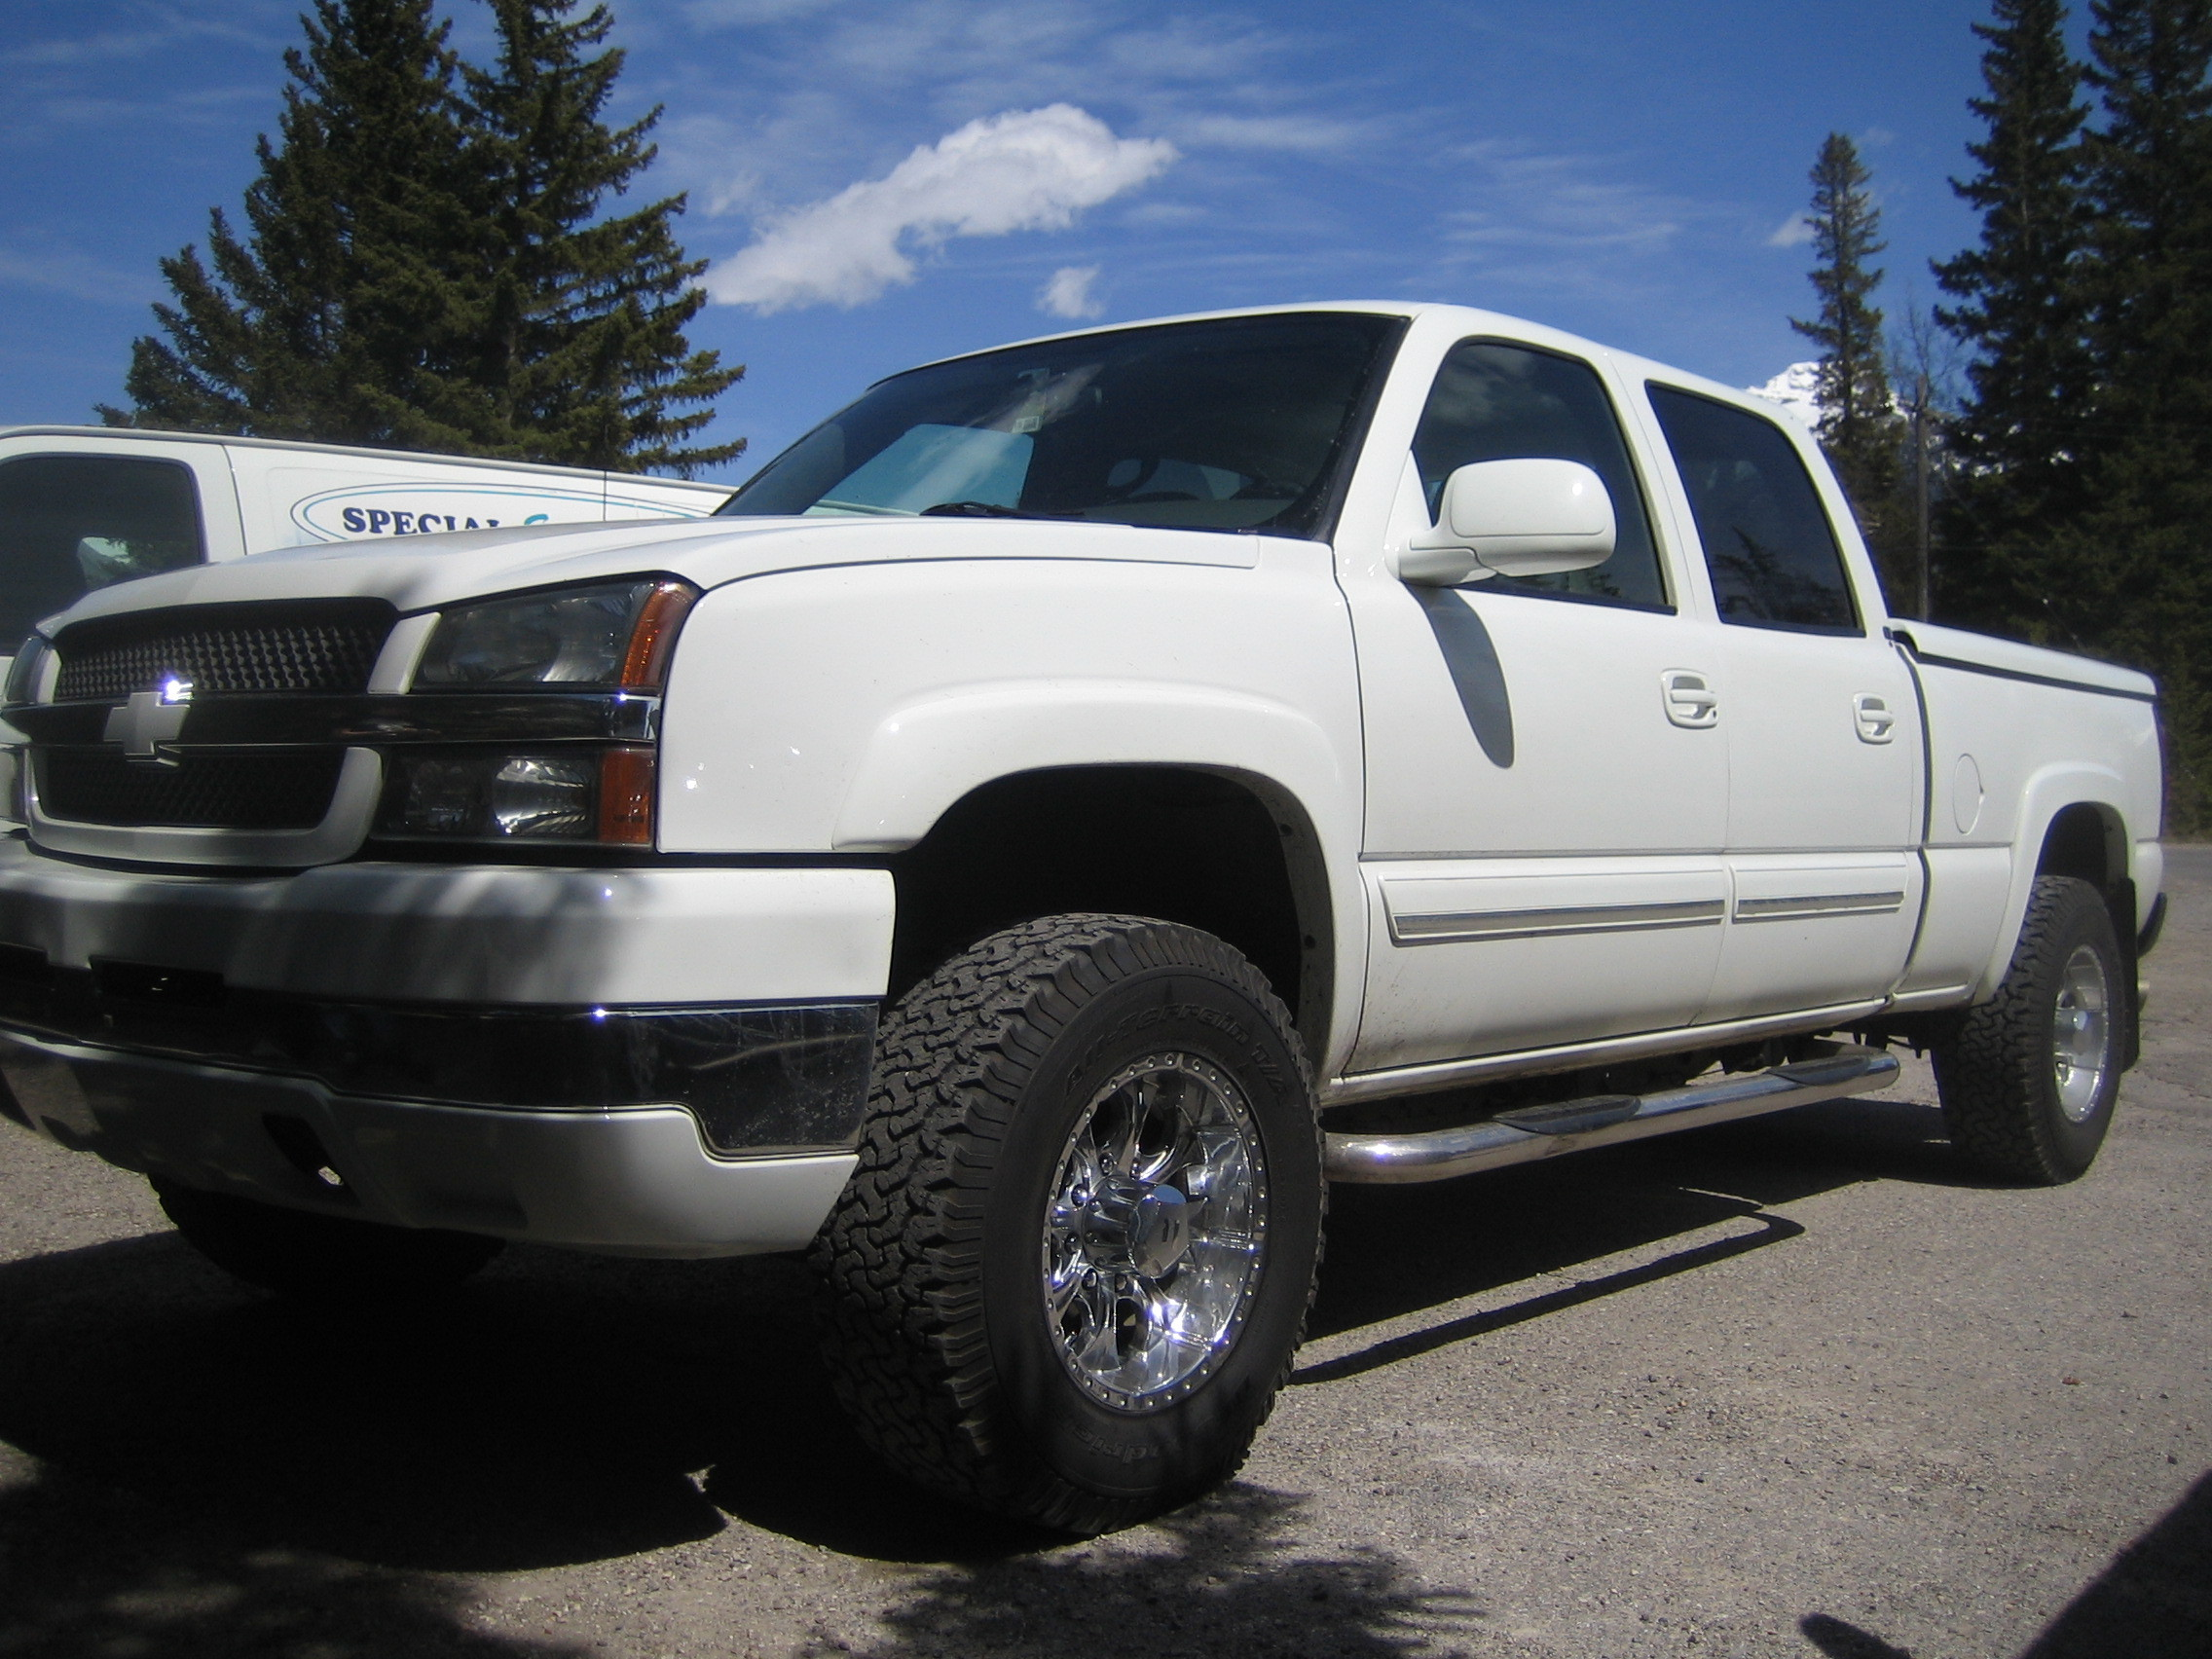 kazor 2004 chevrolet silverado 1500 regular cab specs photos modification info at cardomain. Black Bedroom Furniture Sets. Home Design Ideas